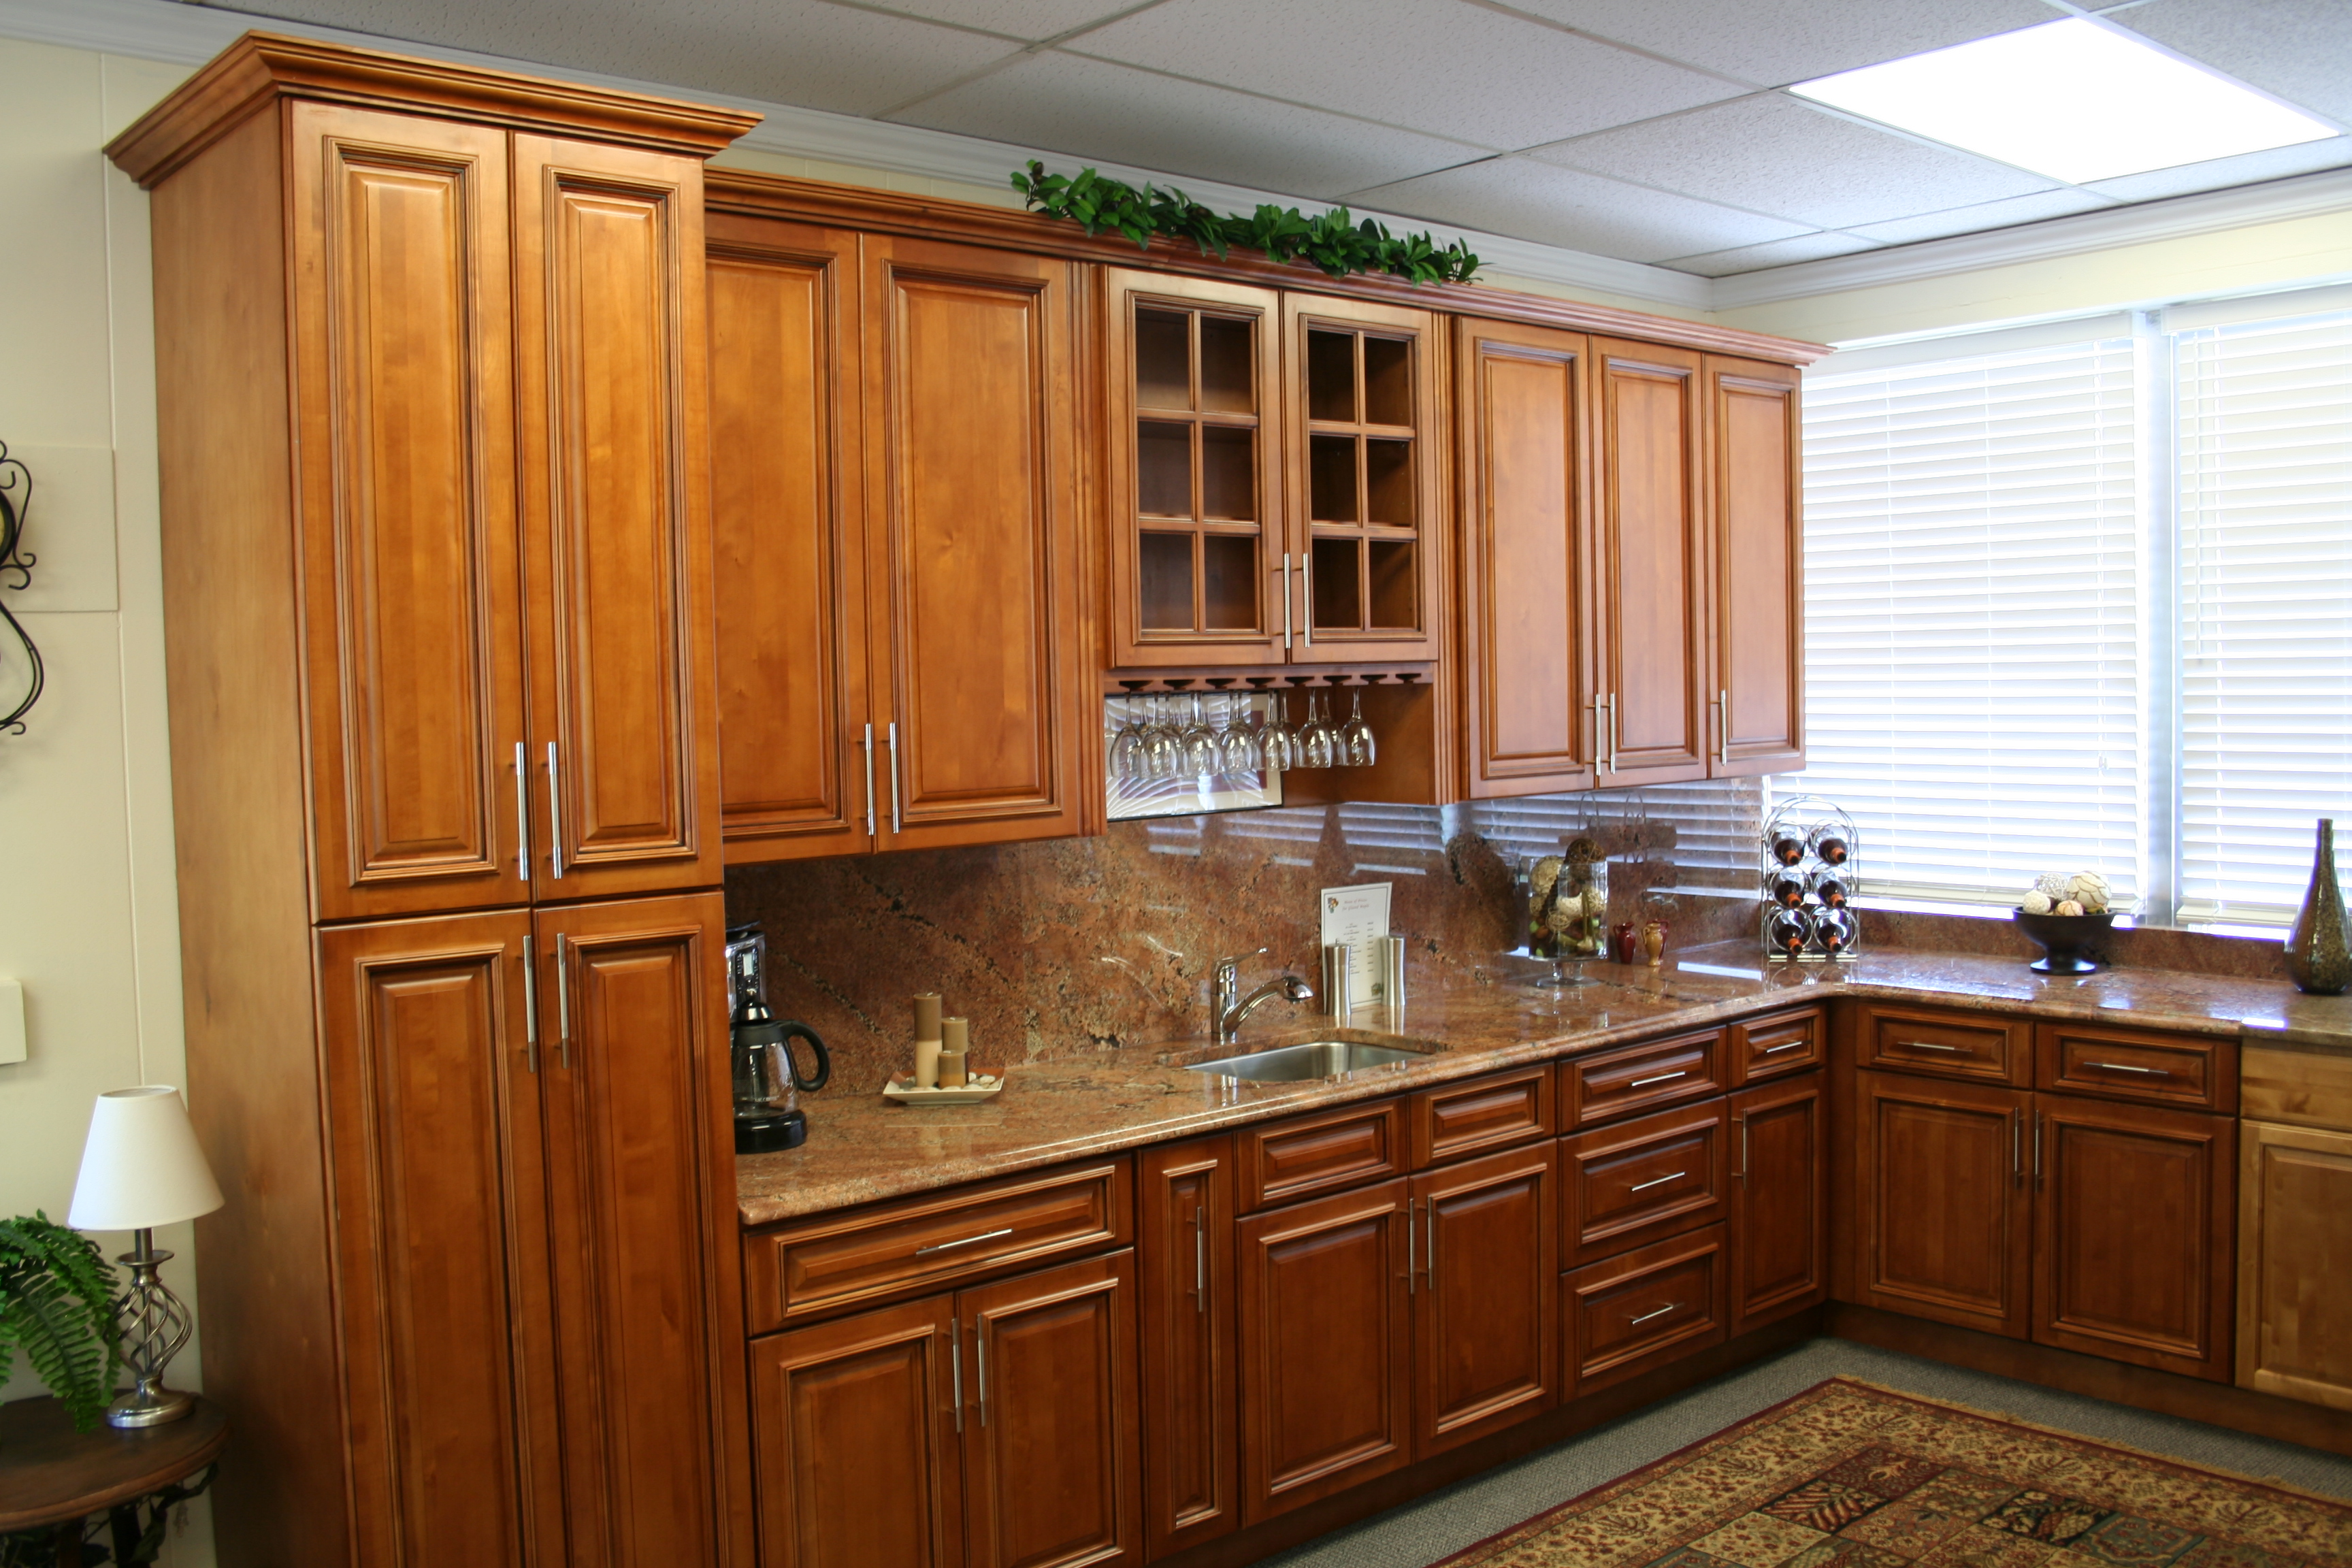 cabinetsandgranite wordpress kitchens with maple cabinets Cabinets and Granite